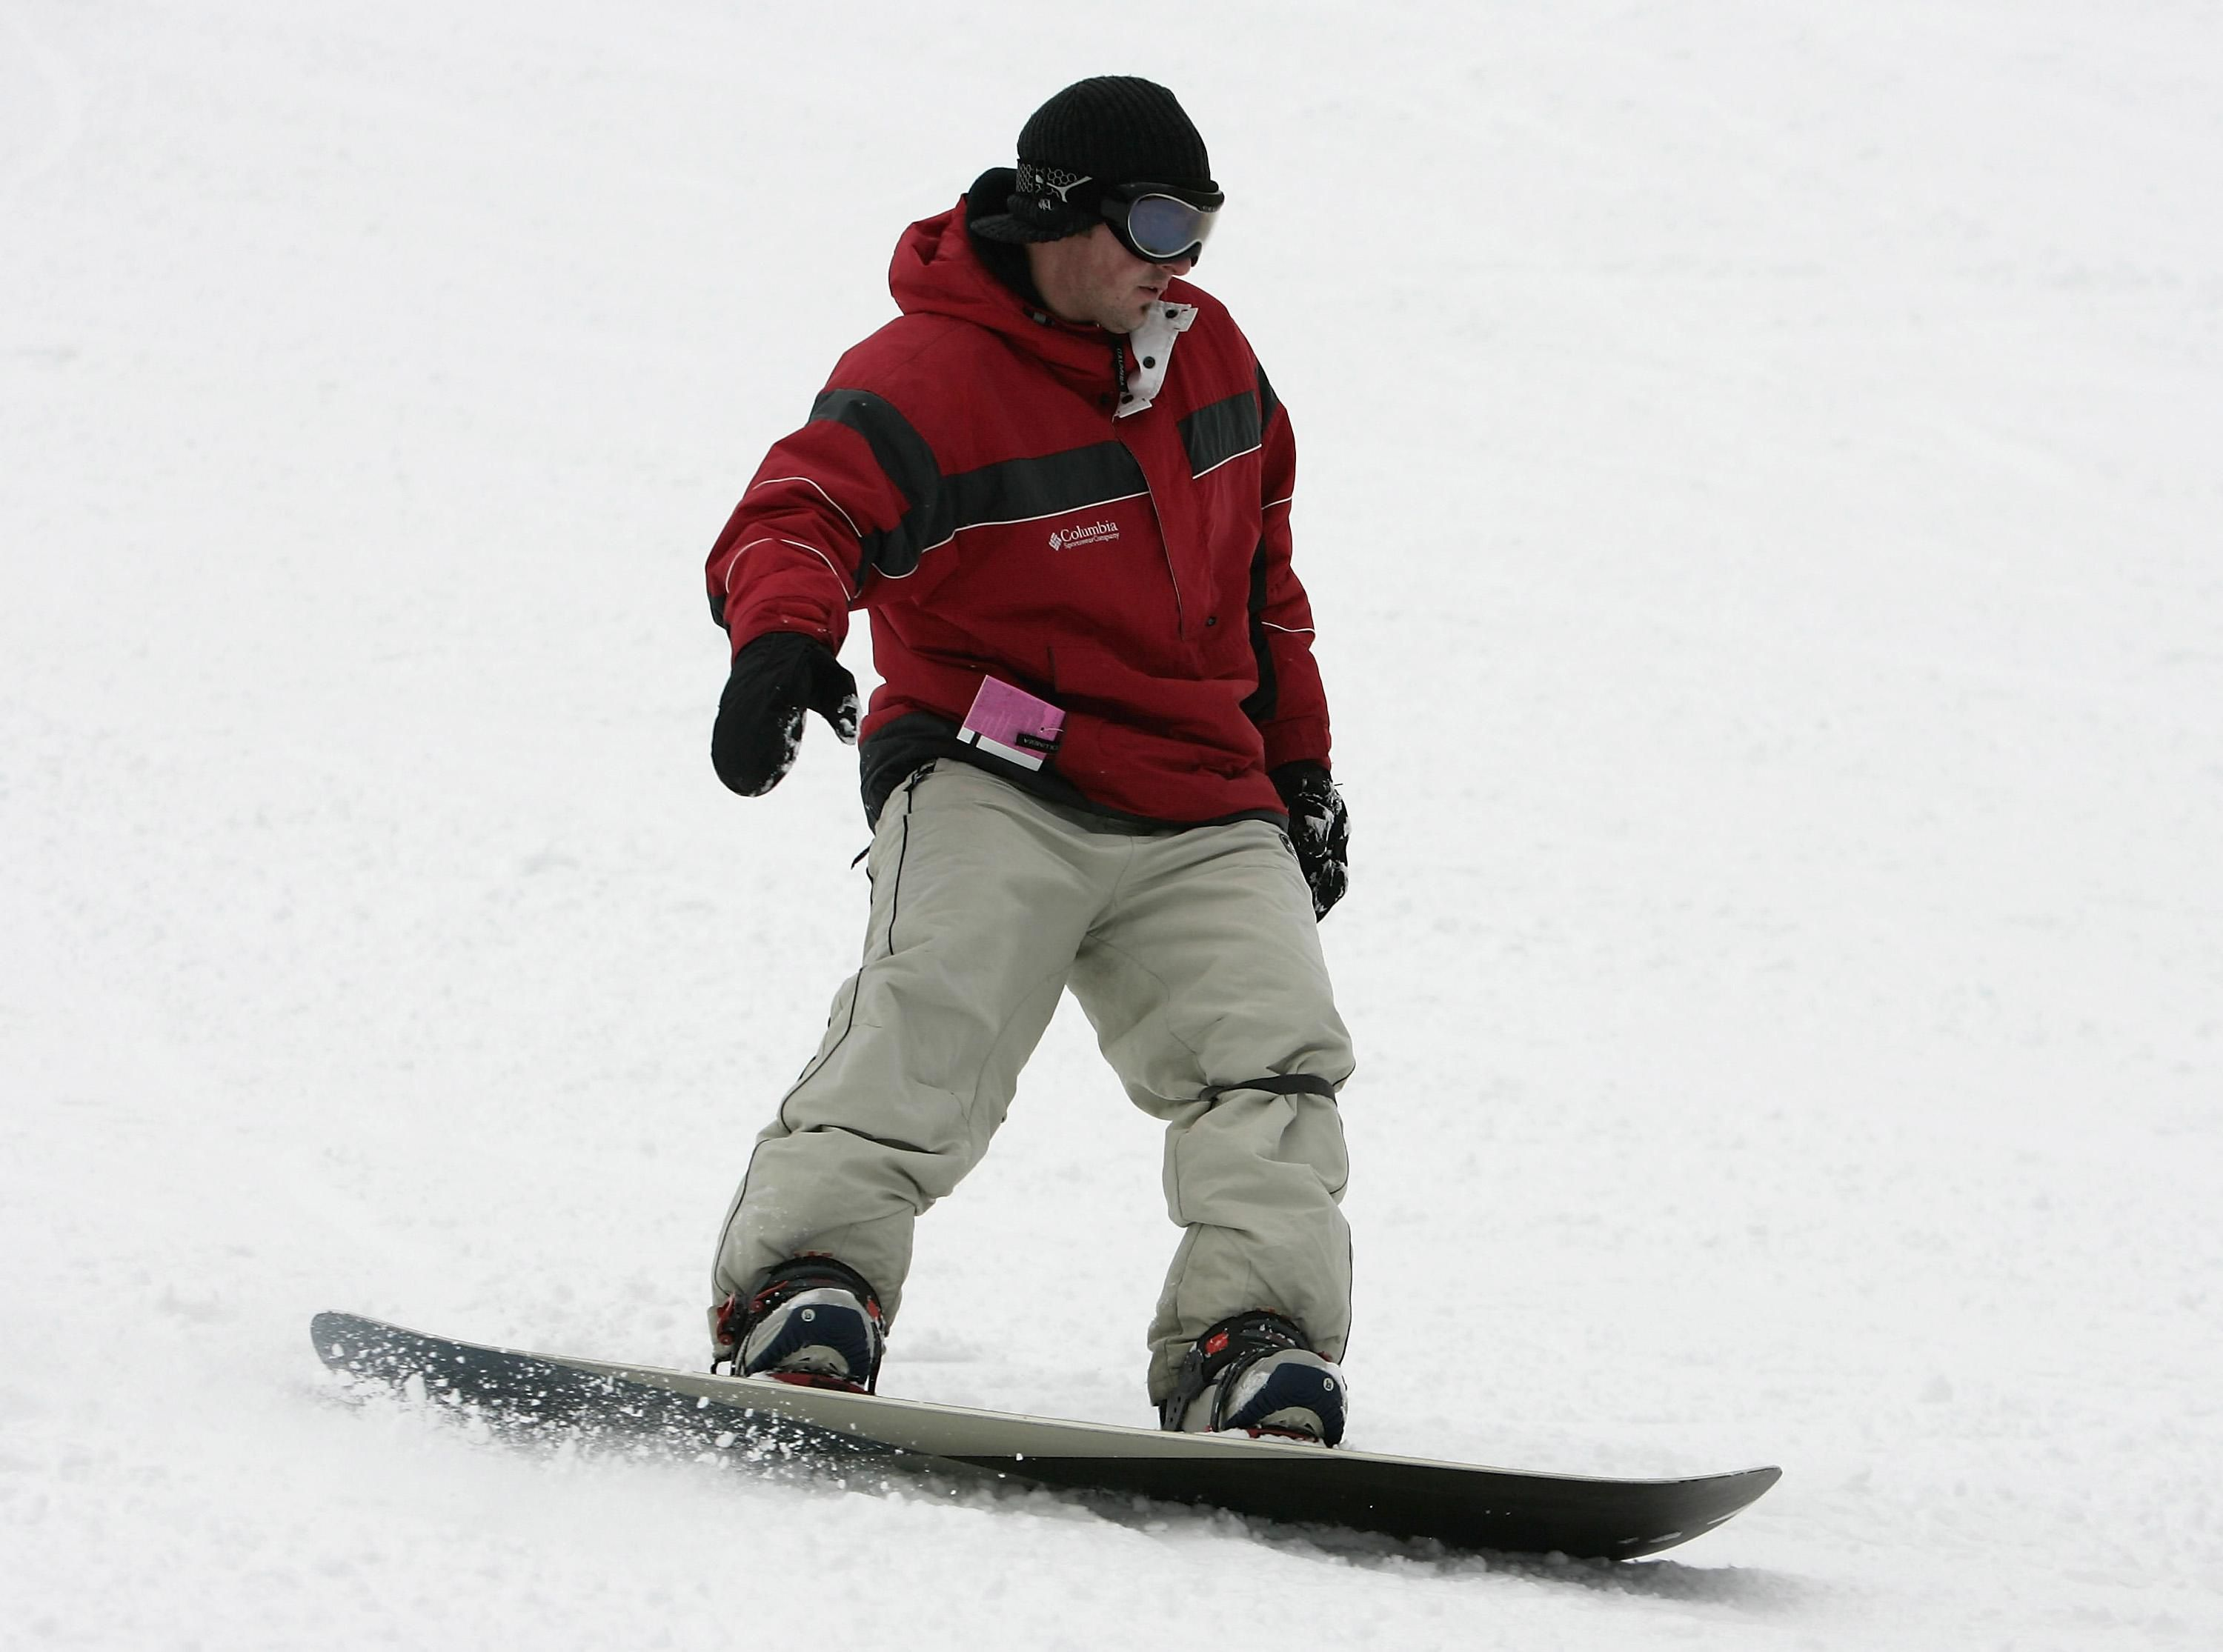 8 ways to improve your balance for snowboarding